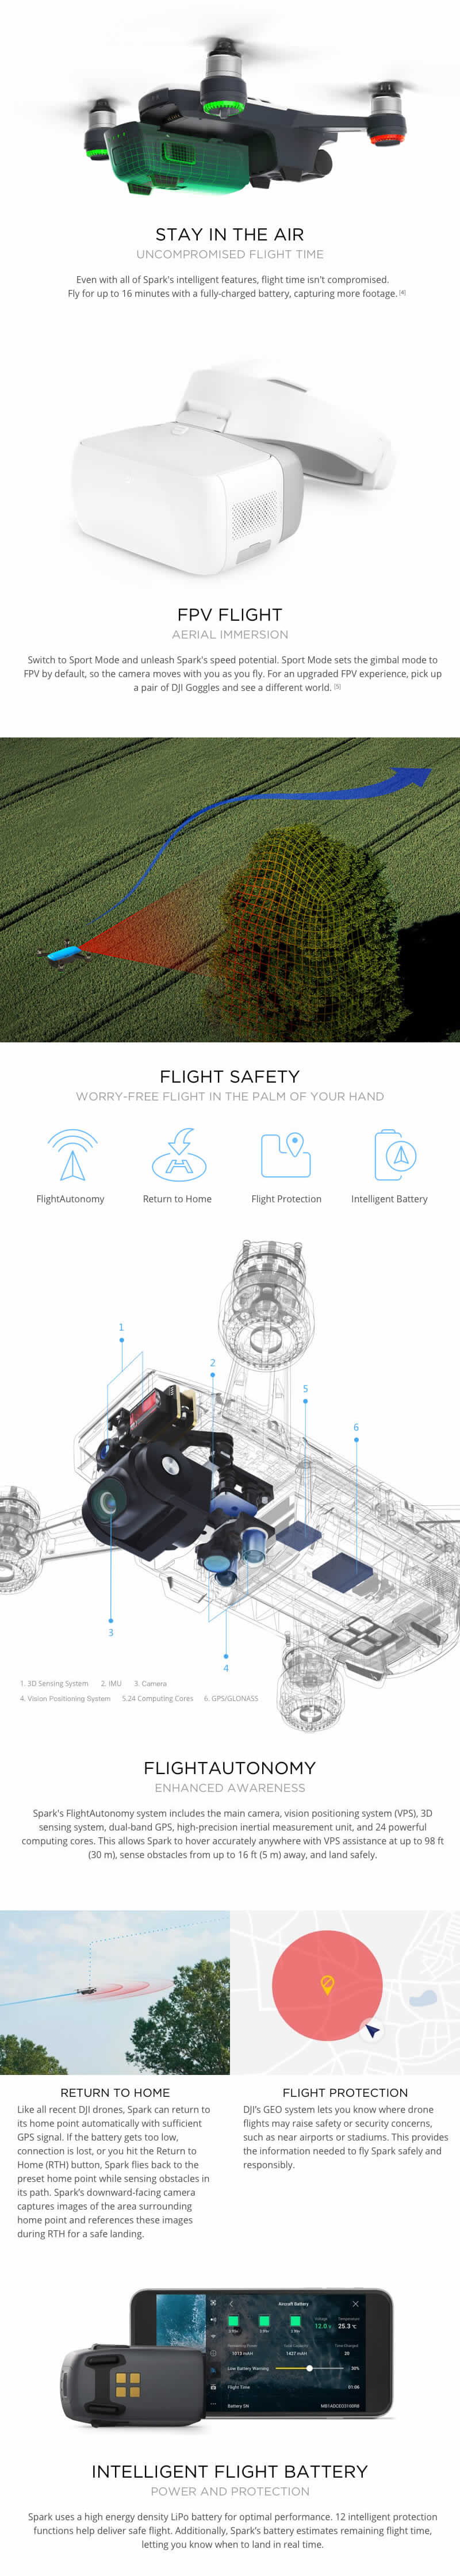 DJI Spark Description 4